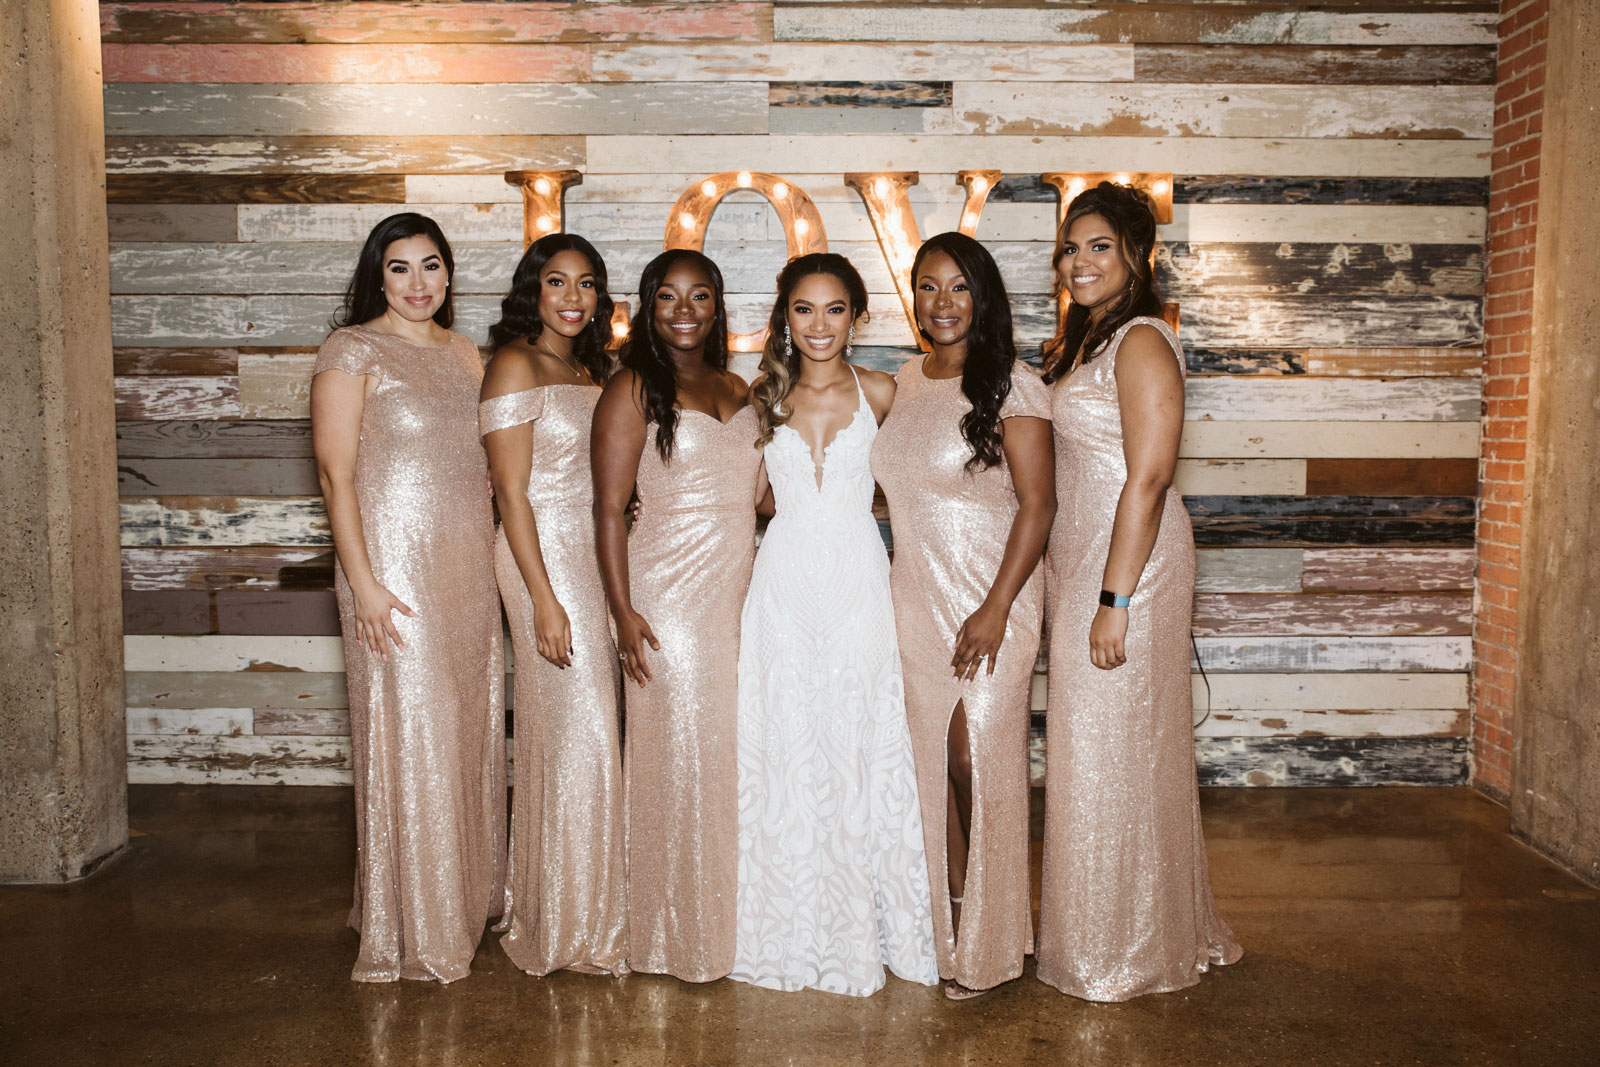 Bridal party | Natalia Wisniewska Photography